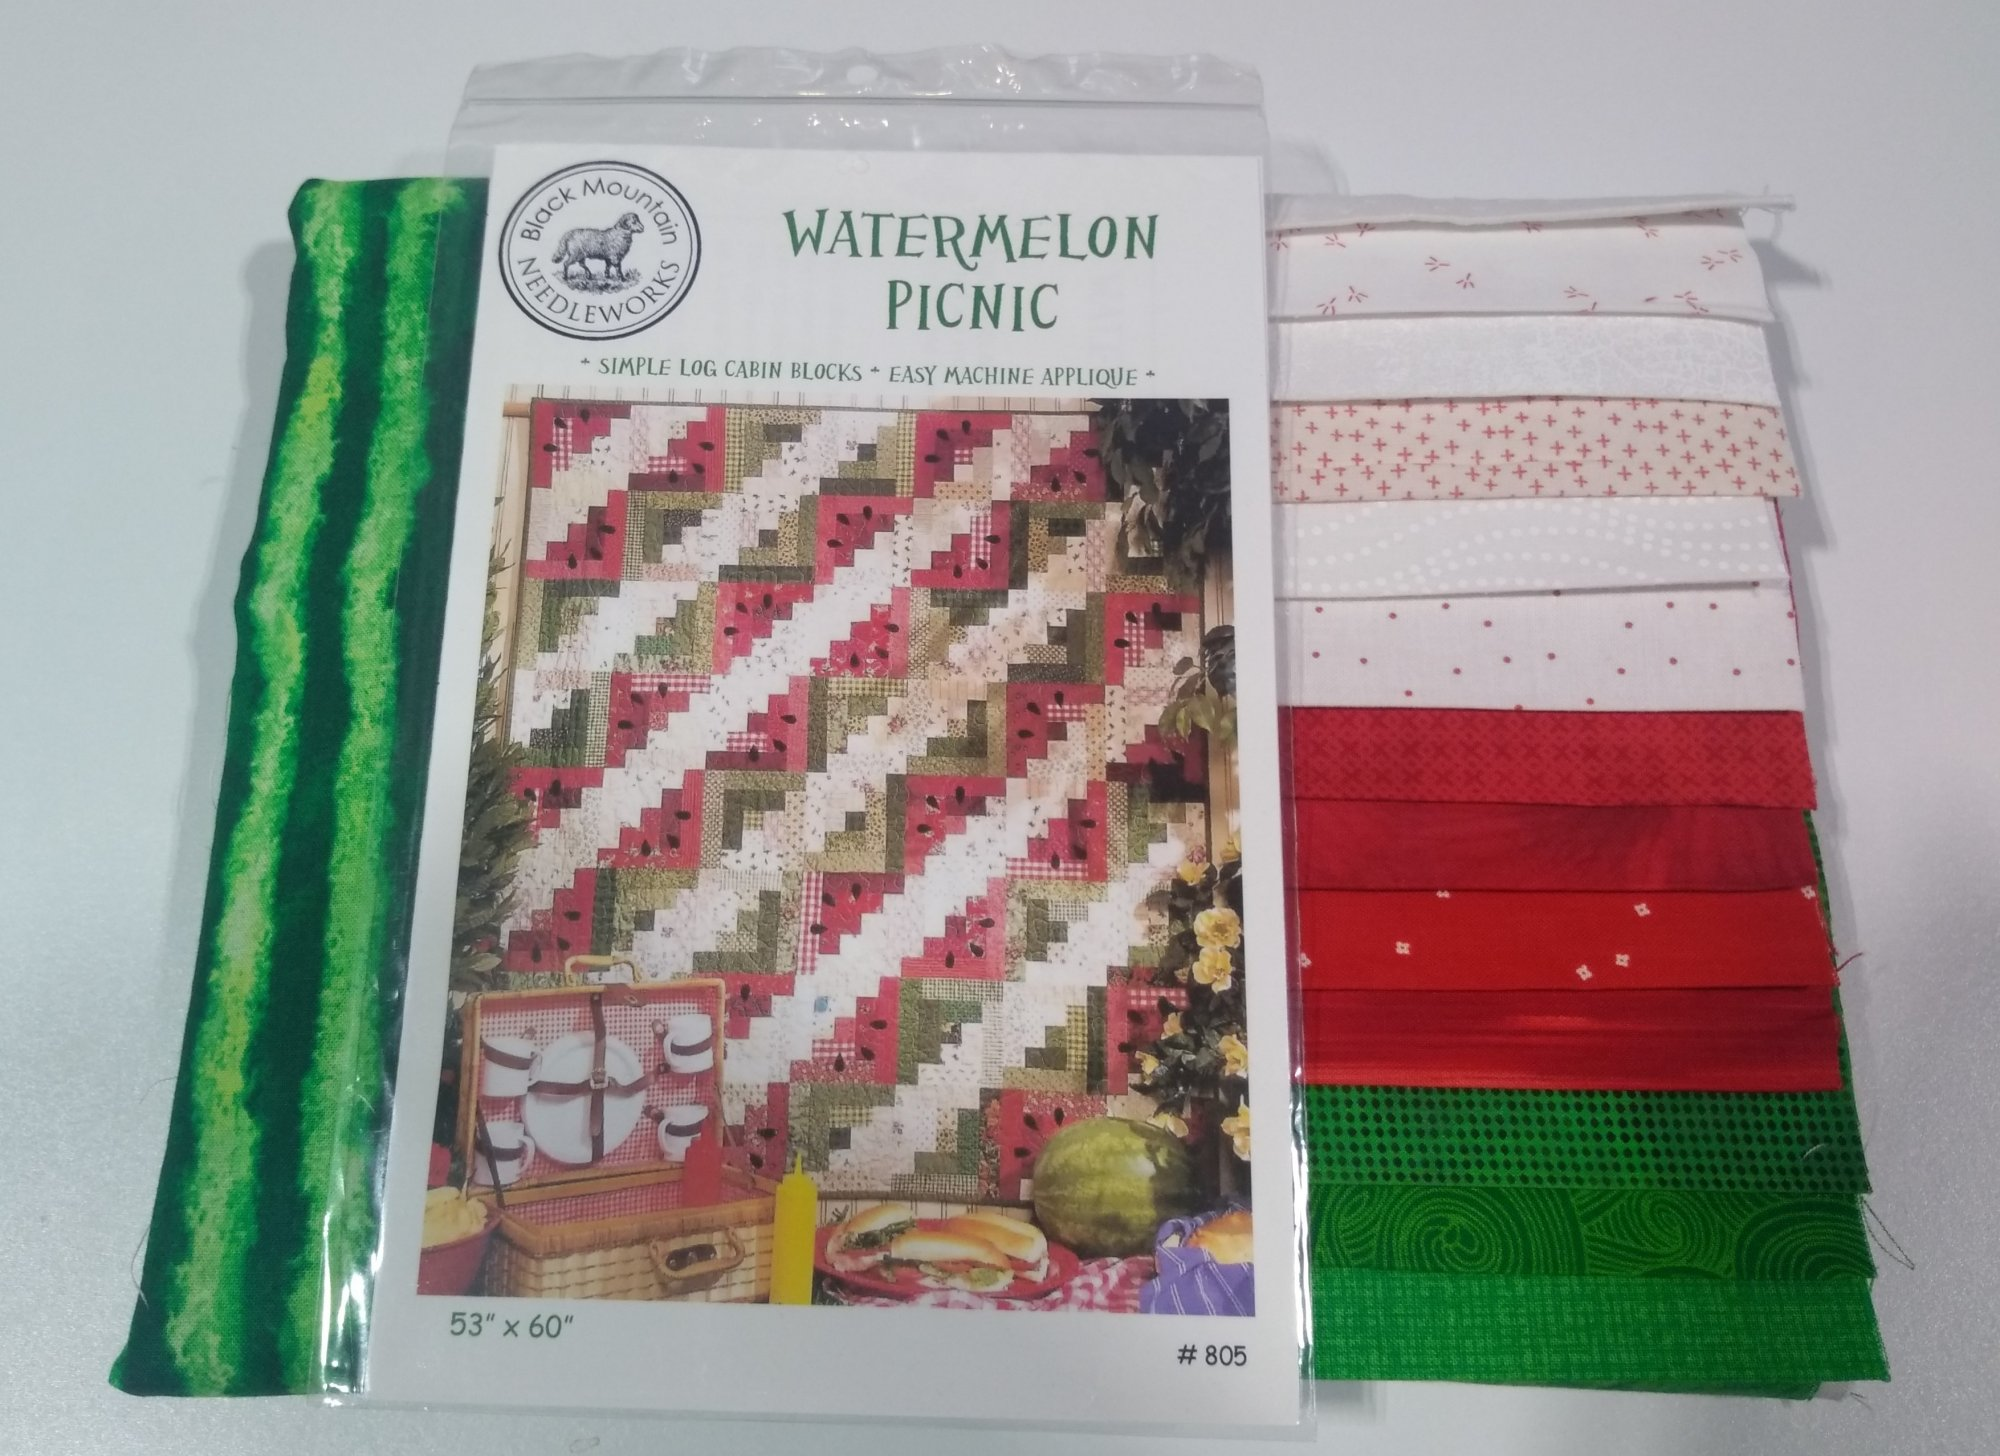 WATERMELON PICNIC QUILT KIT (PATTERN & BINDING INCLUDED)